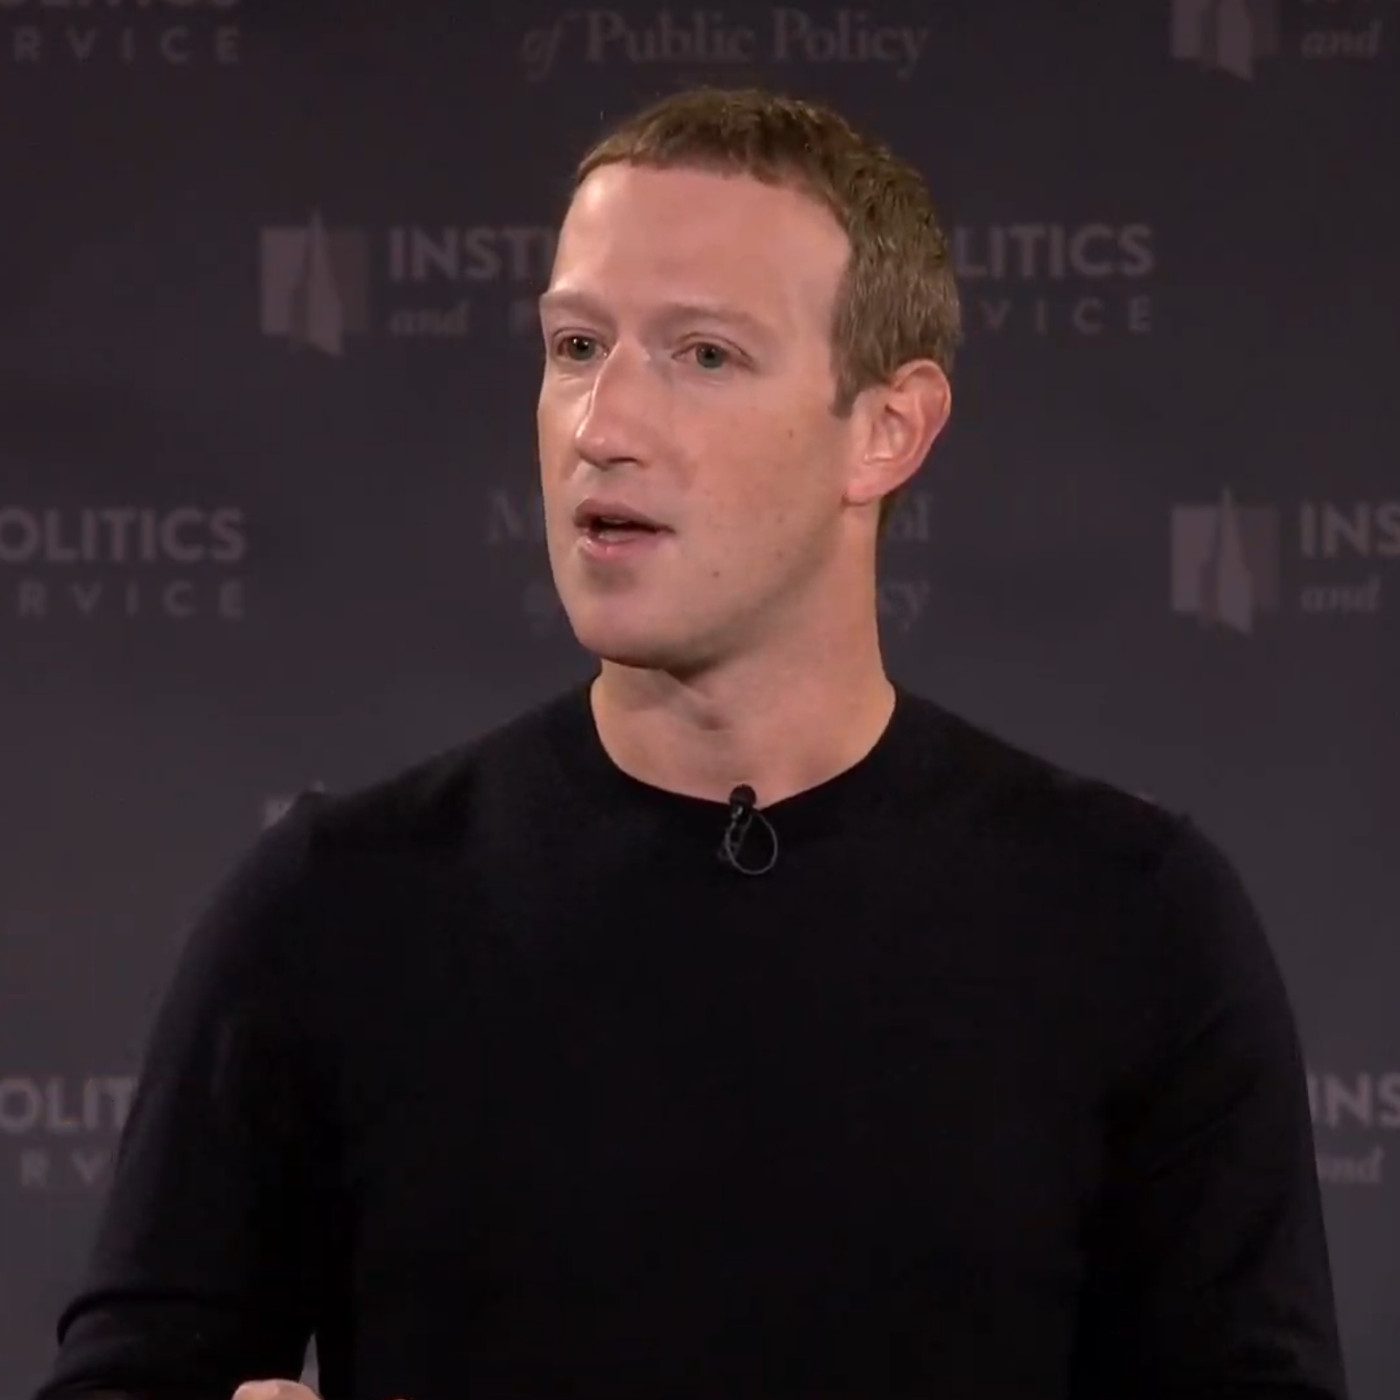 theverge.com - Russell Brandom - Mark Zuckerberg took on China in a speech defending free expression